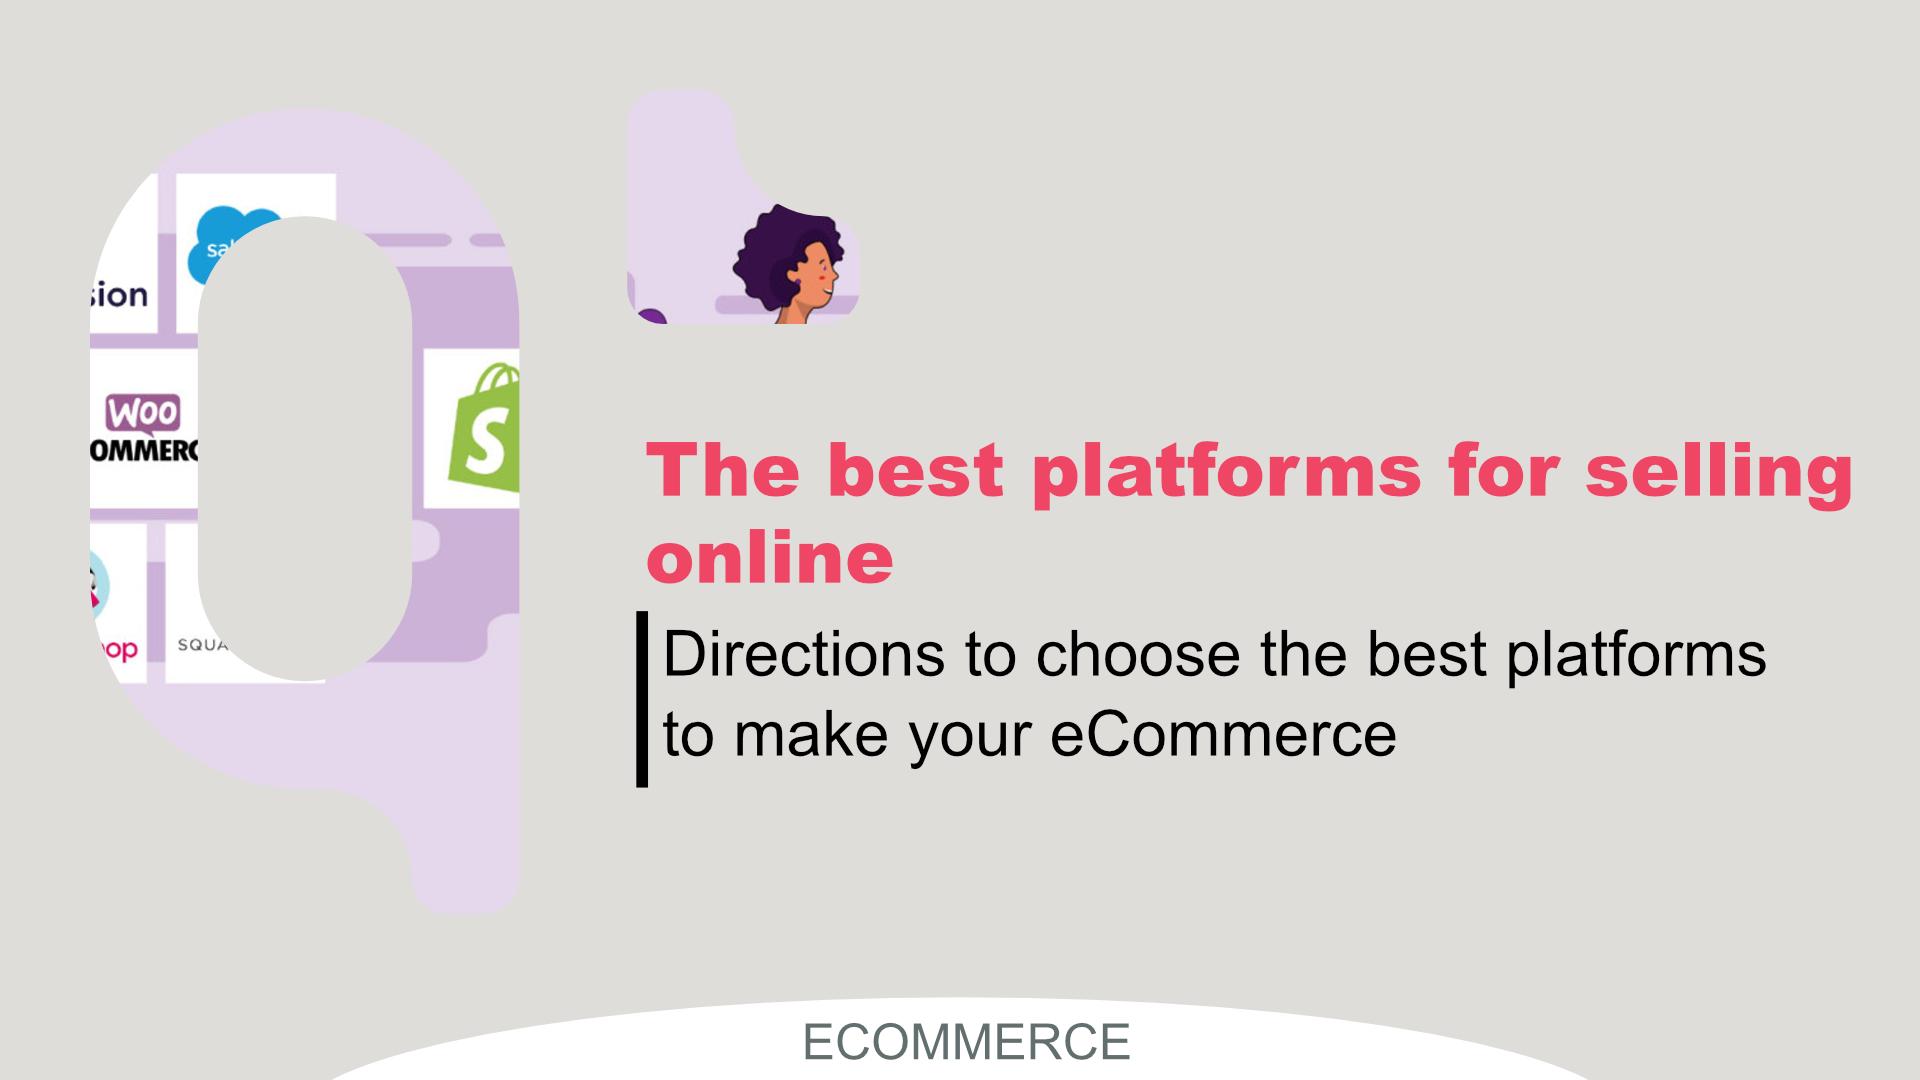 The best platforms for selling online